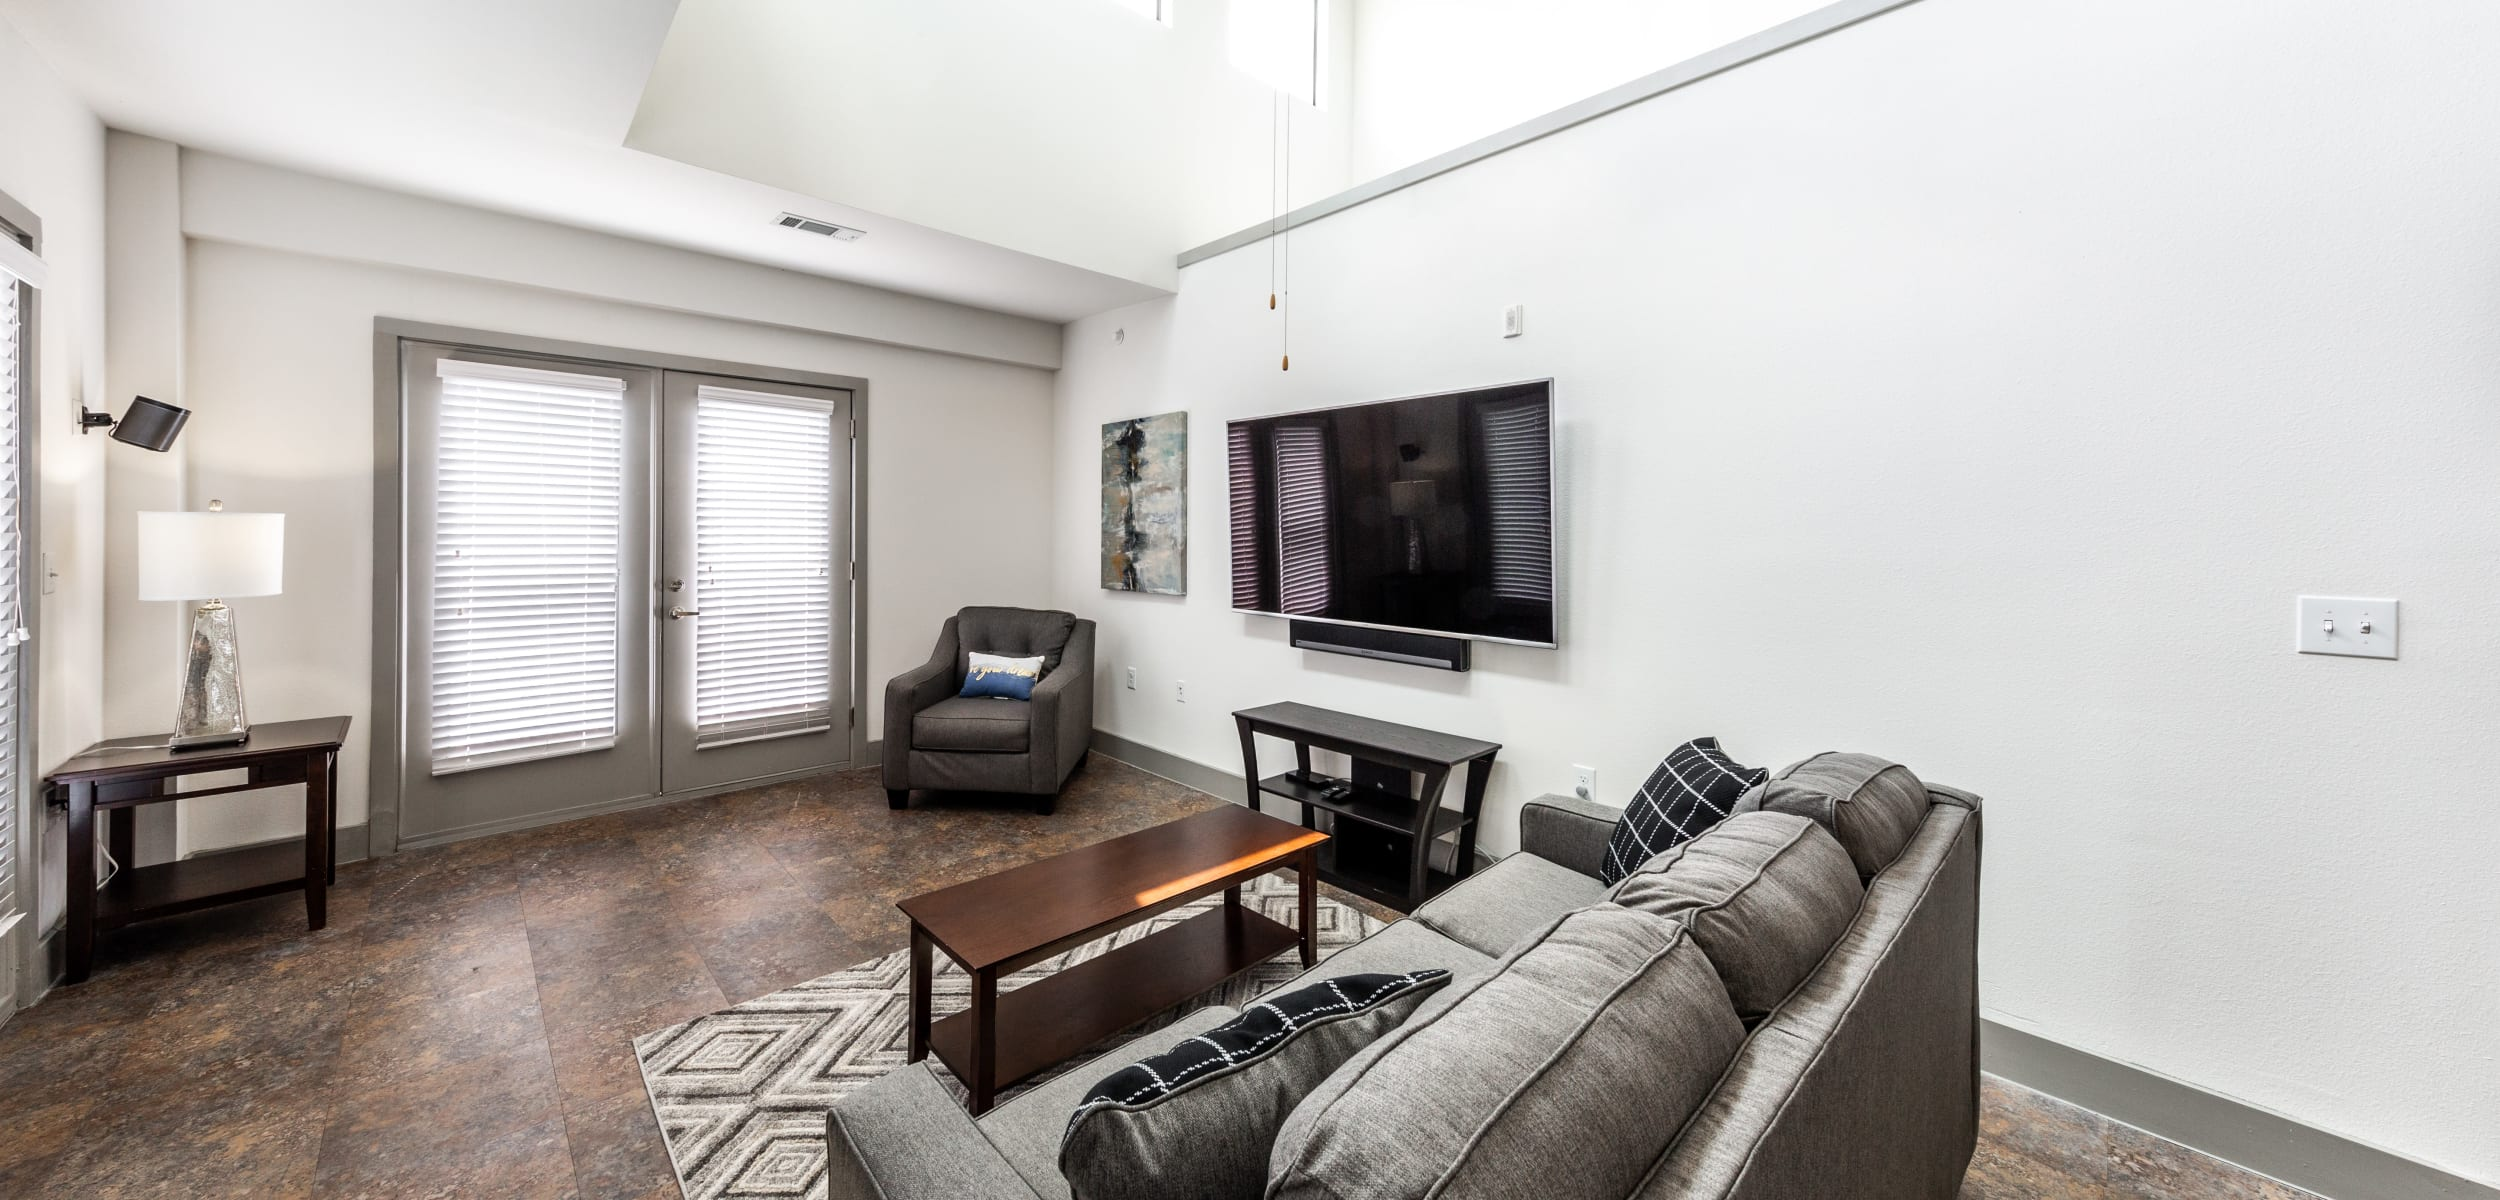 Cozy living space at Regents West at 26th in Austin, Texas